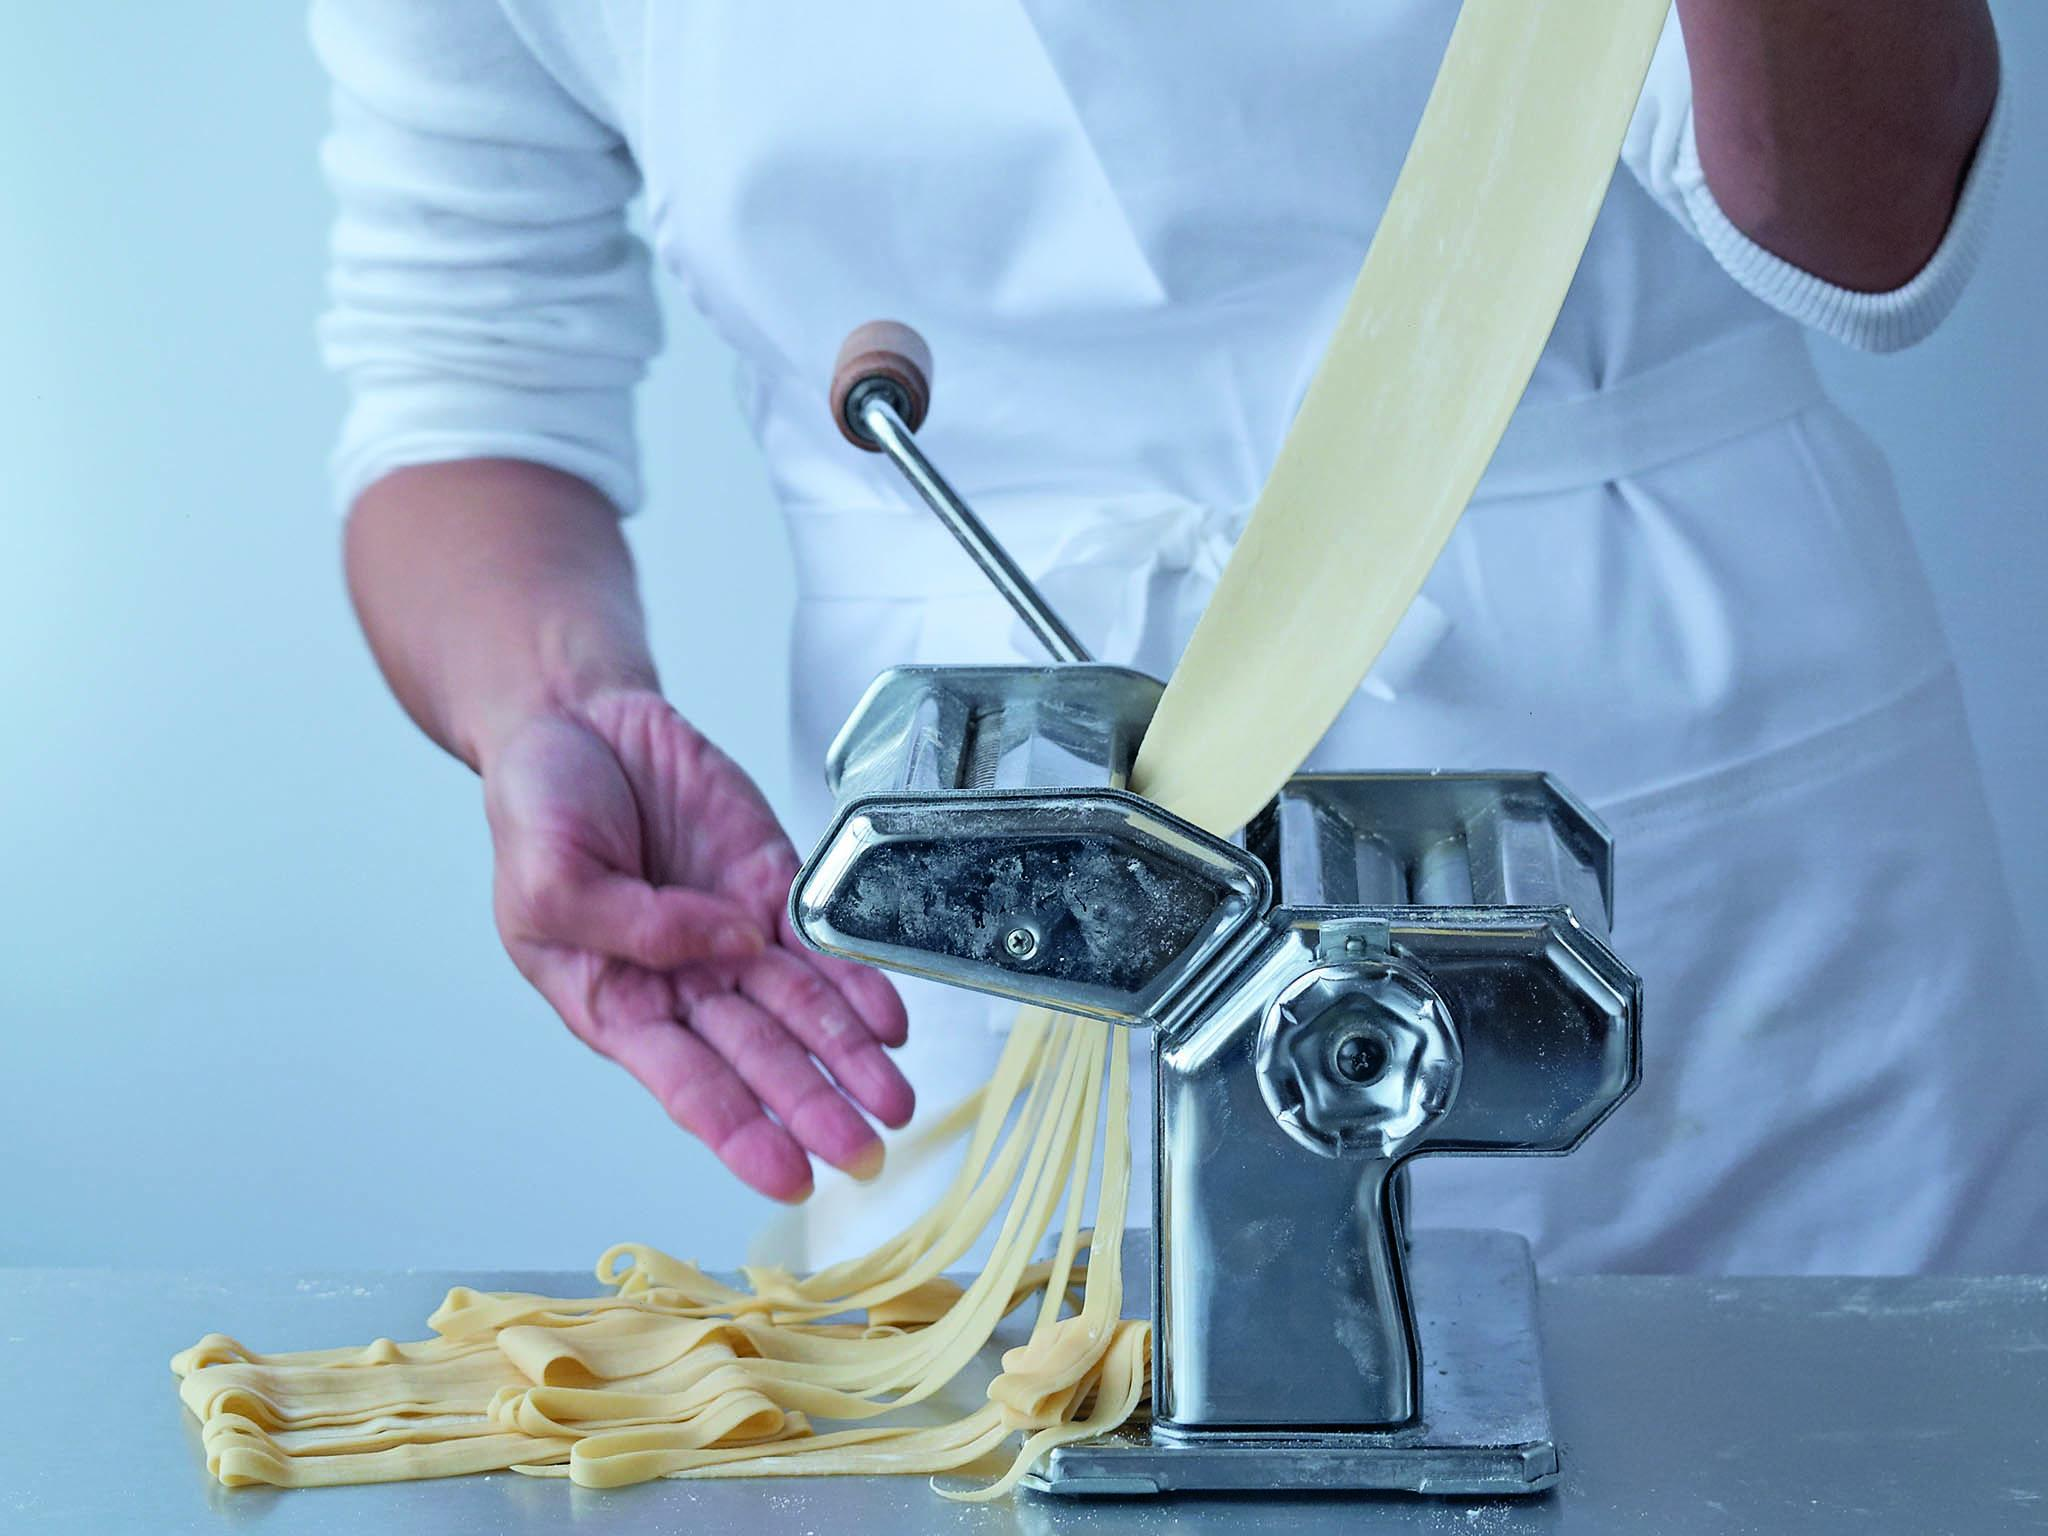 Leiths\' guide to making and cooking pasta | The Independent